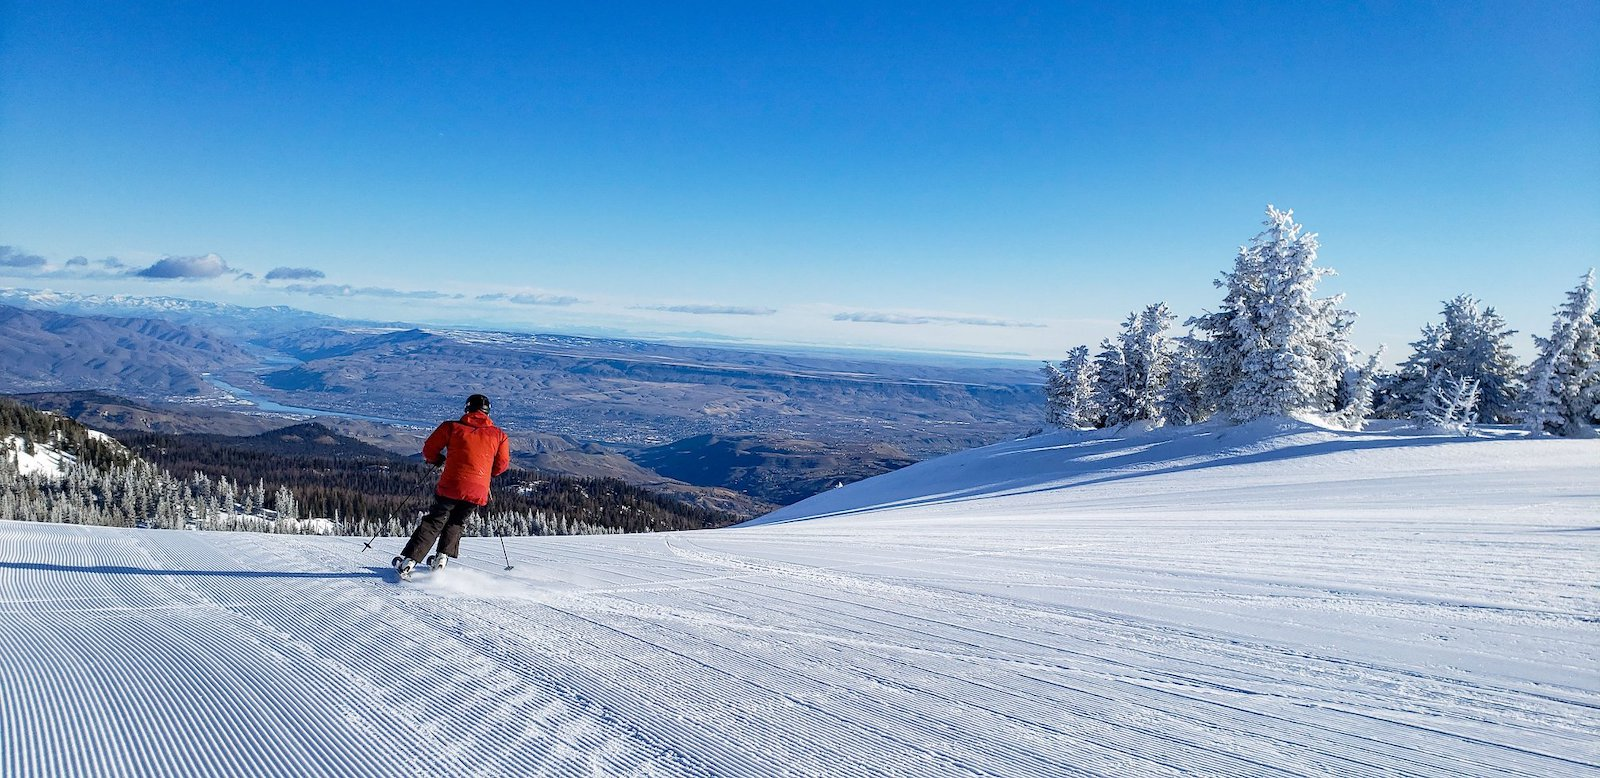 Image of a skier going down the slopes at Mission Ridge Ski Area in Washington